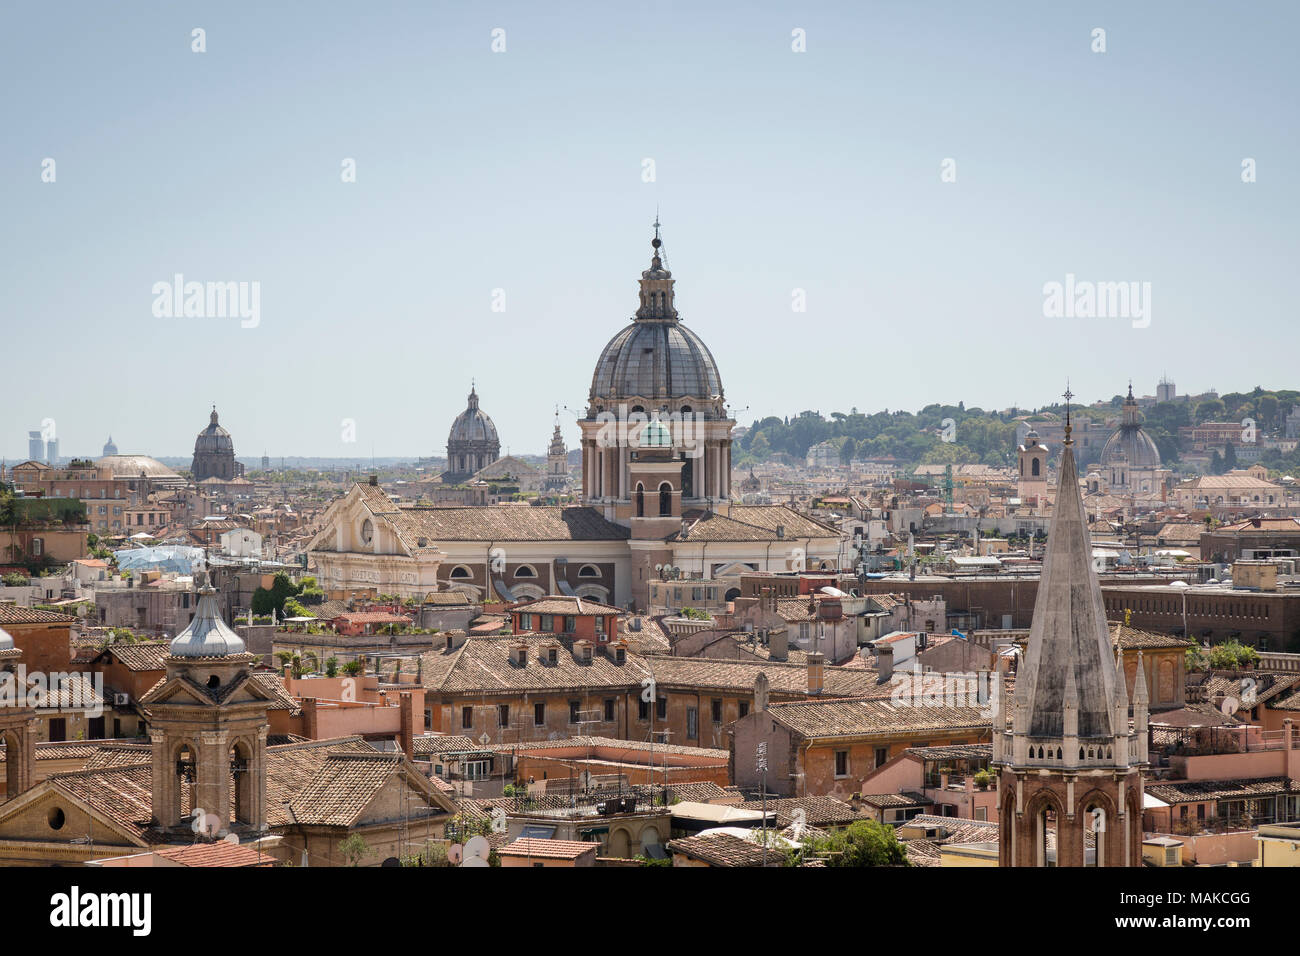 The skyline of Rome from Terrazza del Pincio looking across the city ...